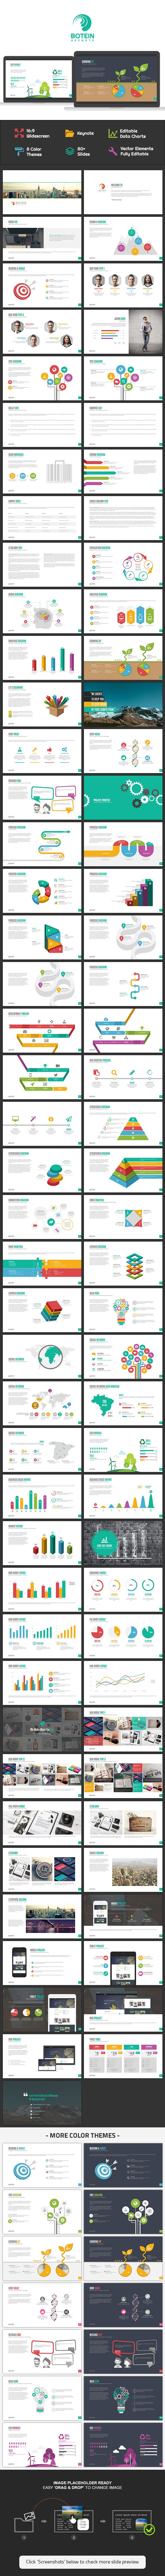 Botein Keynote Template - Business Keynote Templates